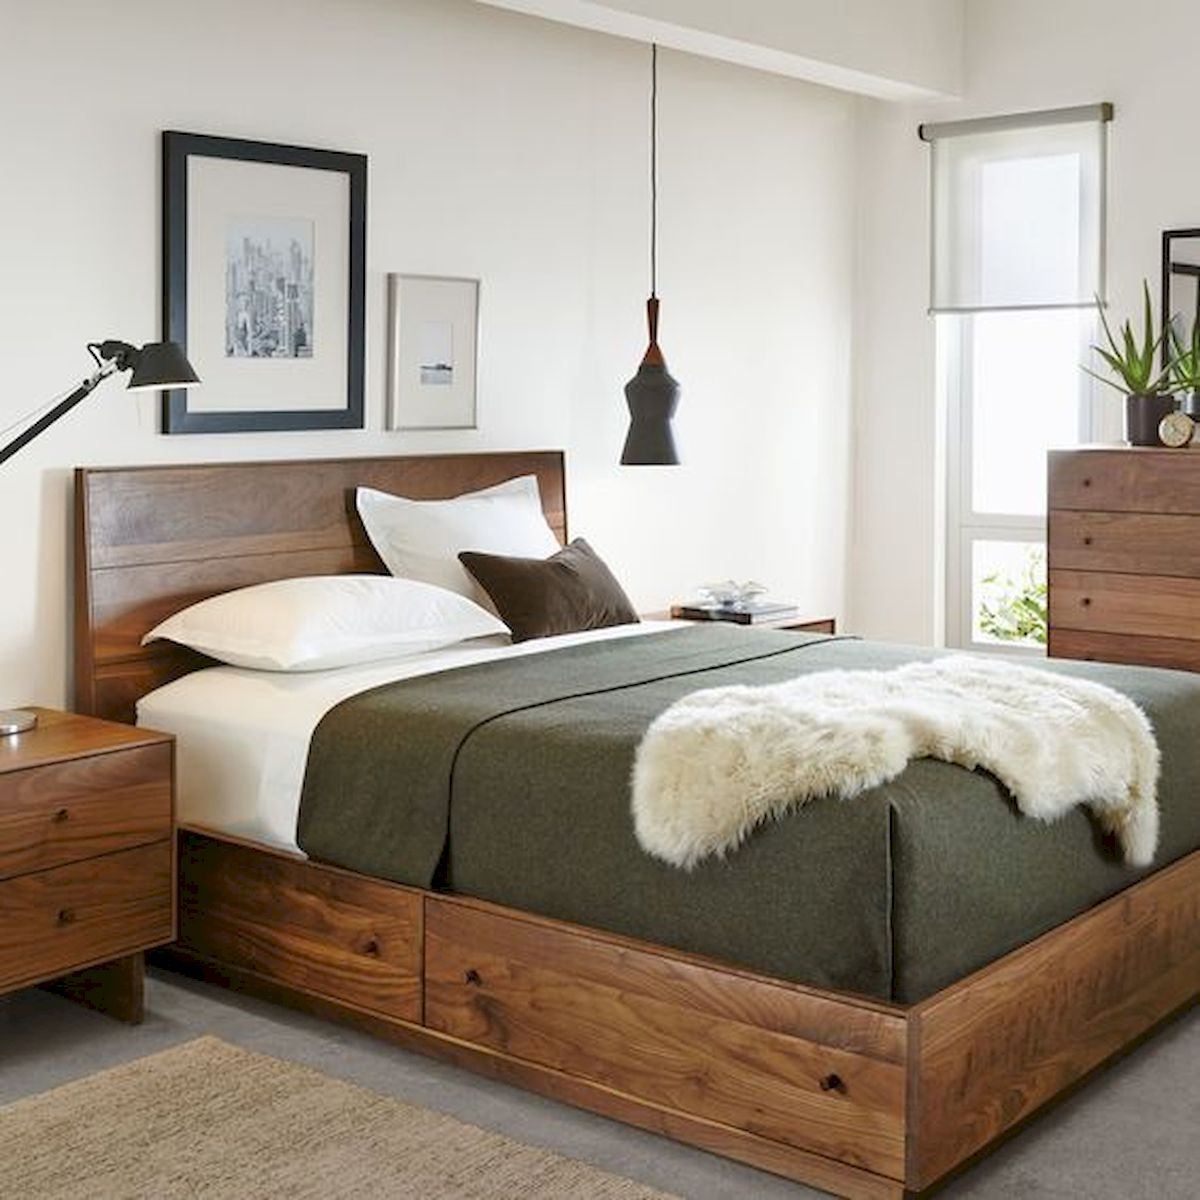 60 Brilliant Space Saving Ideas For Small Bedroom (23)